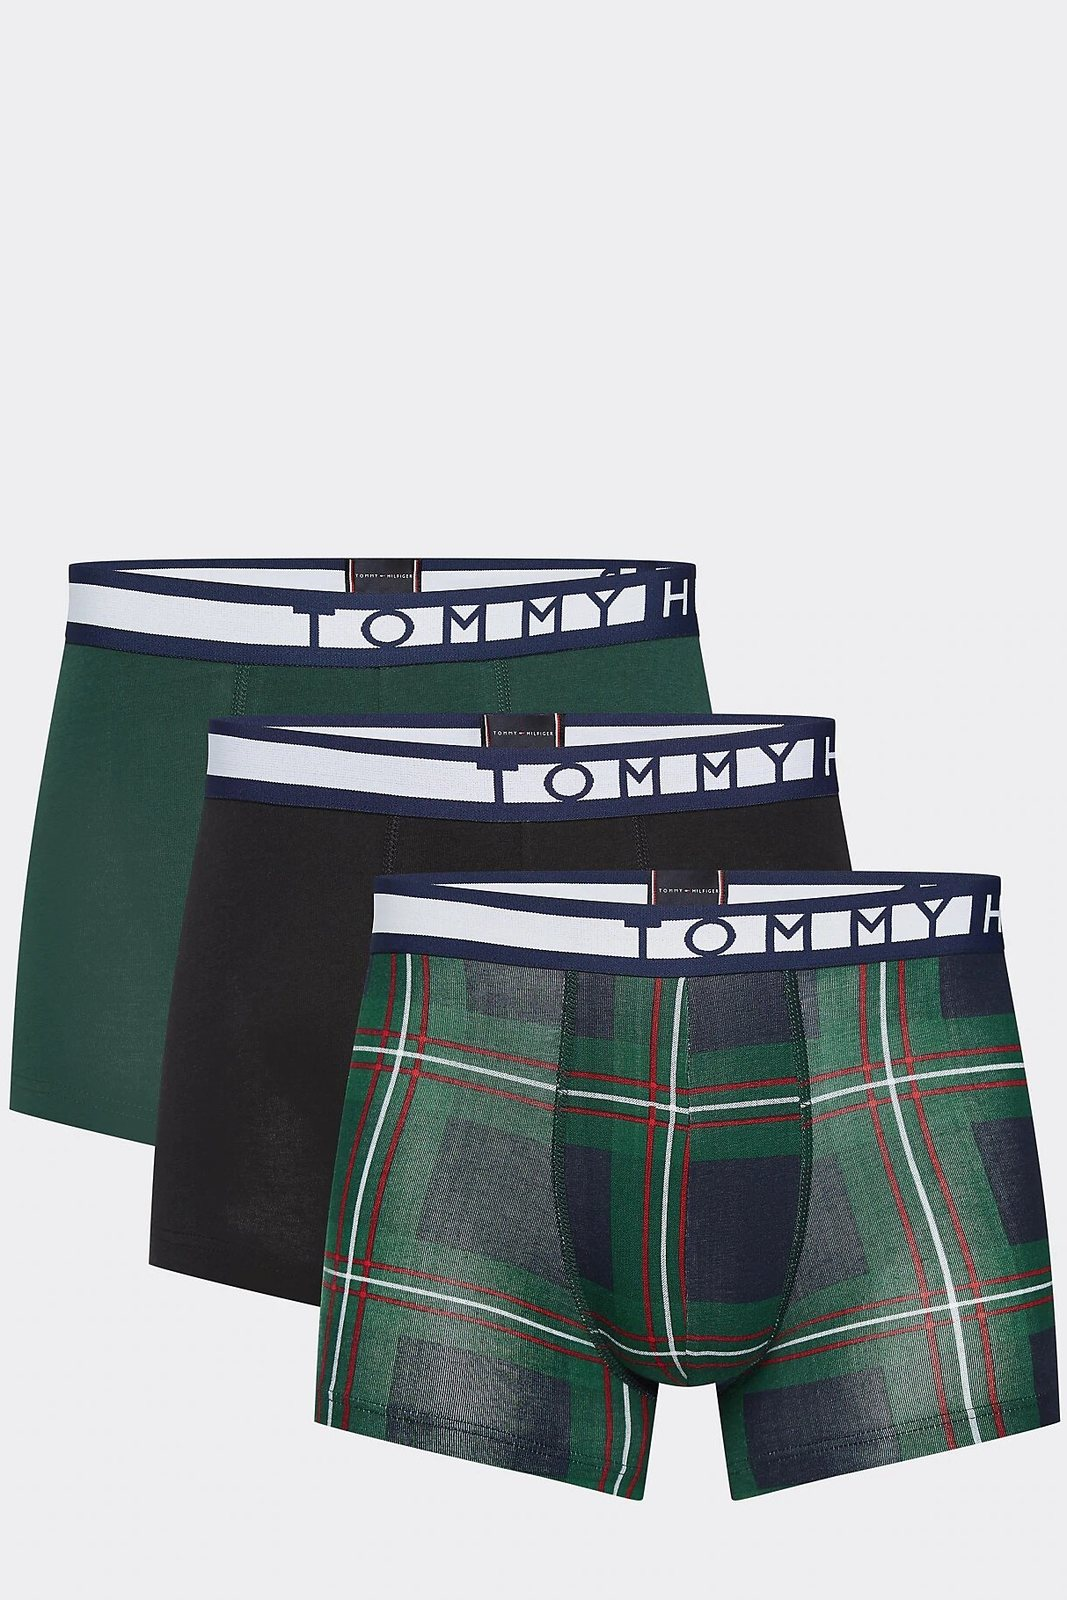 Tommy Hilfiger multicolor 3 pack boxer shorts 3P Trunk